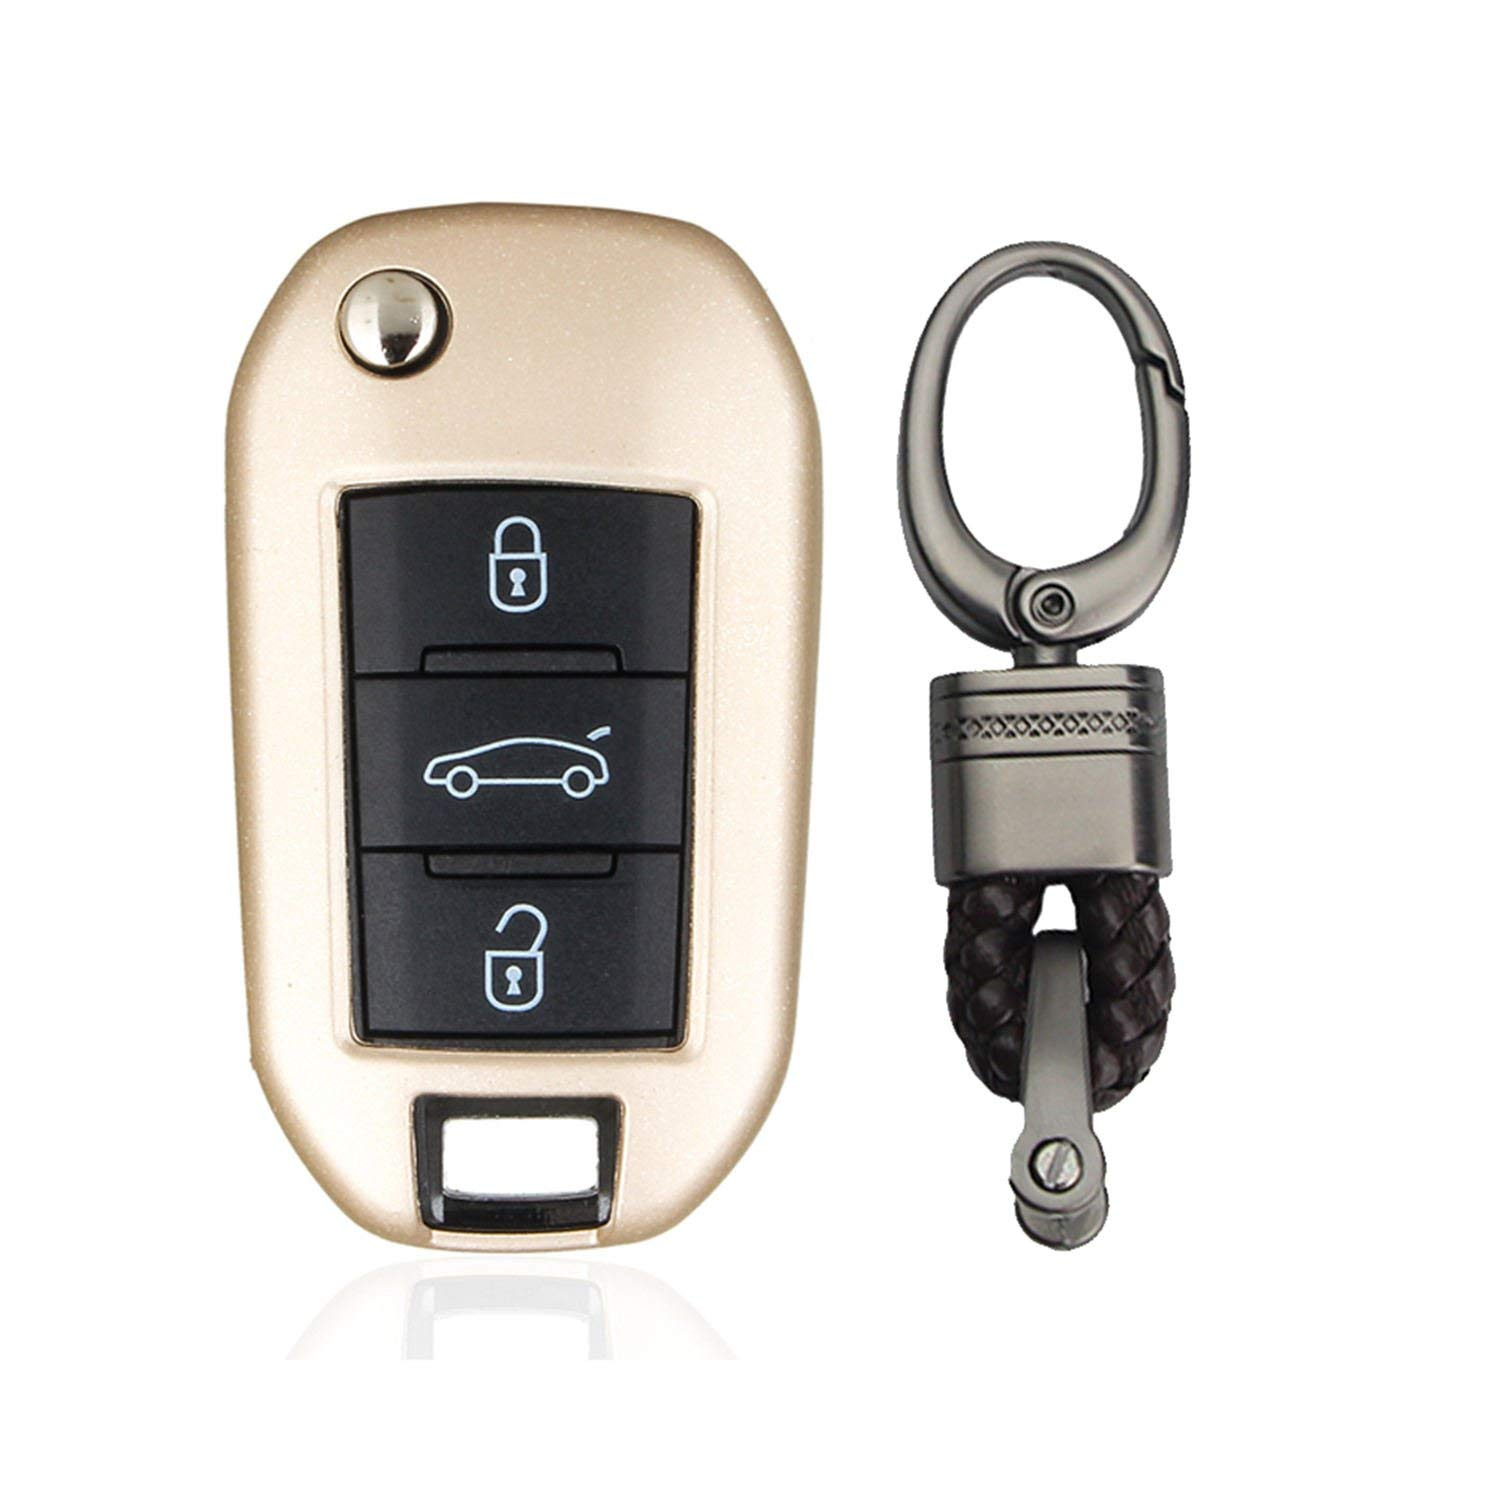 M.JVisun TPU Soft Silicone Case Cover Protector Shell For Peugeot Flip Key Fob, Car Remote Key Fob Case Skin Cover For Peugeot 2008 301 308 308S 3008 408 4008 508 Fob Remote Key With Keychain - Gold